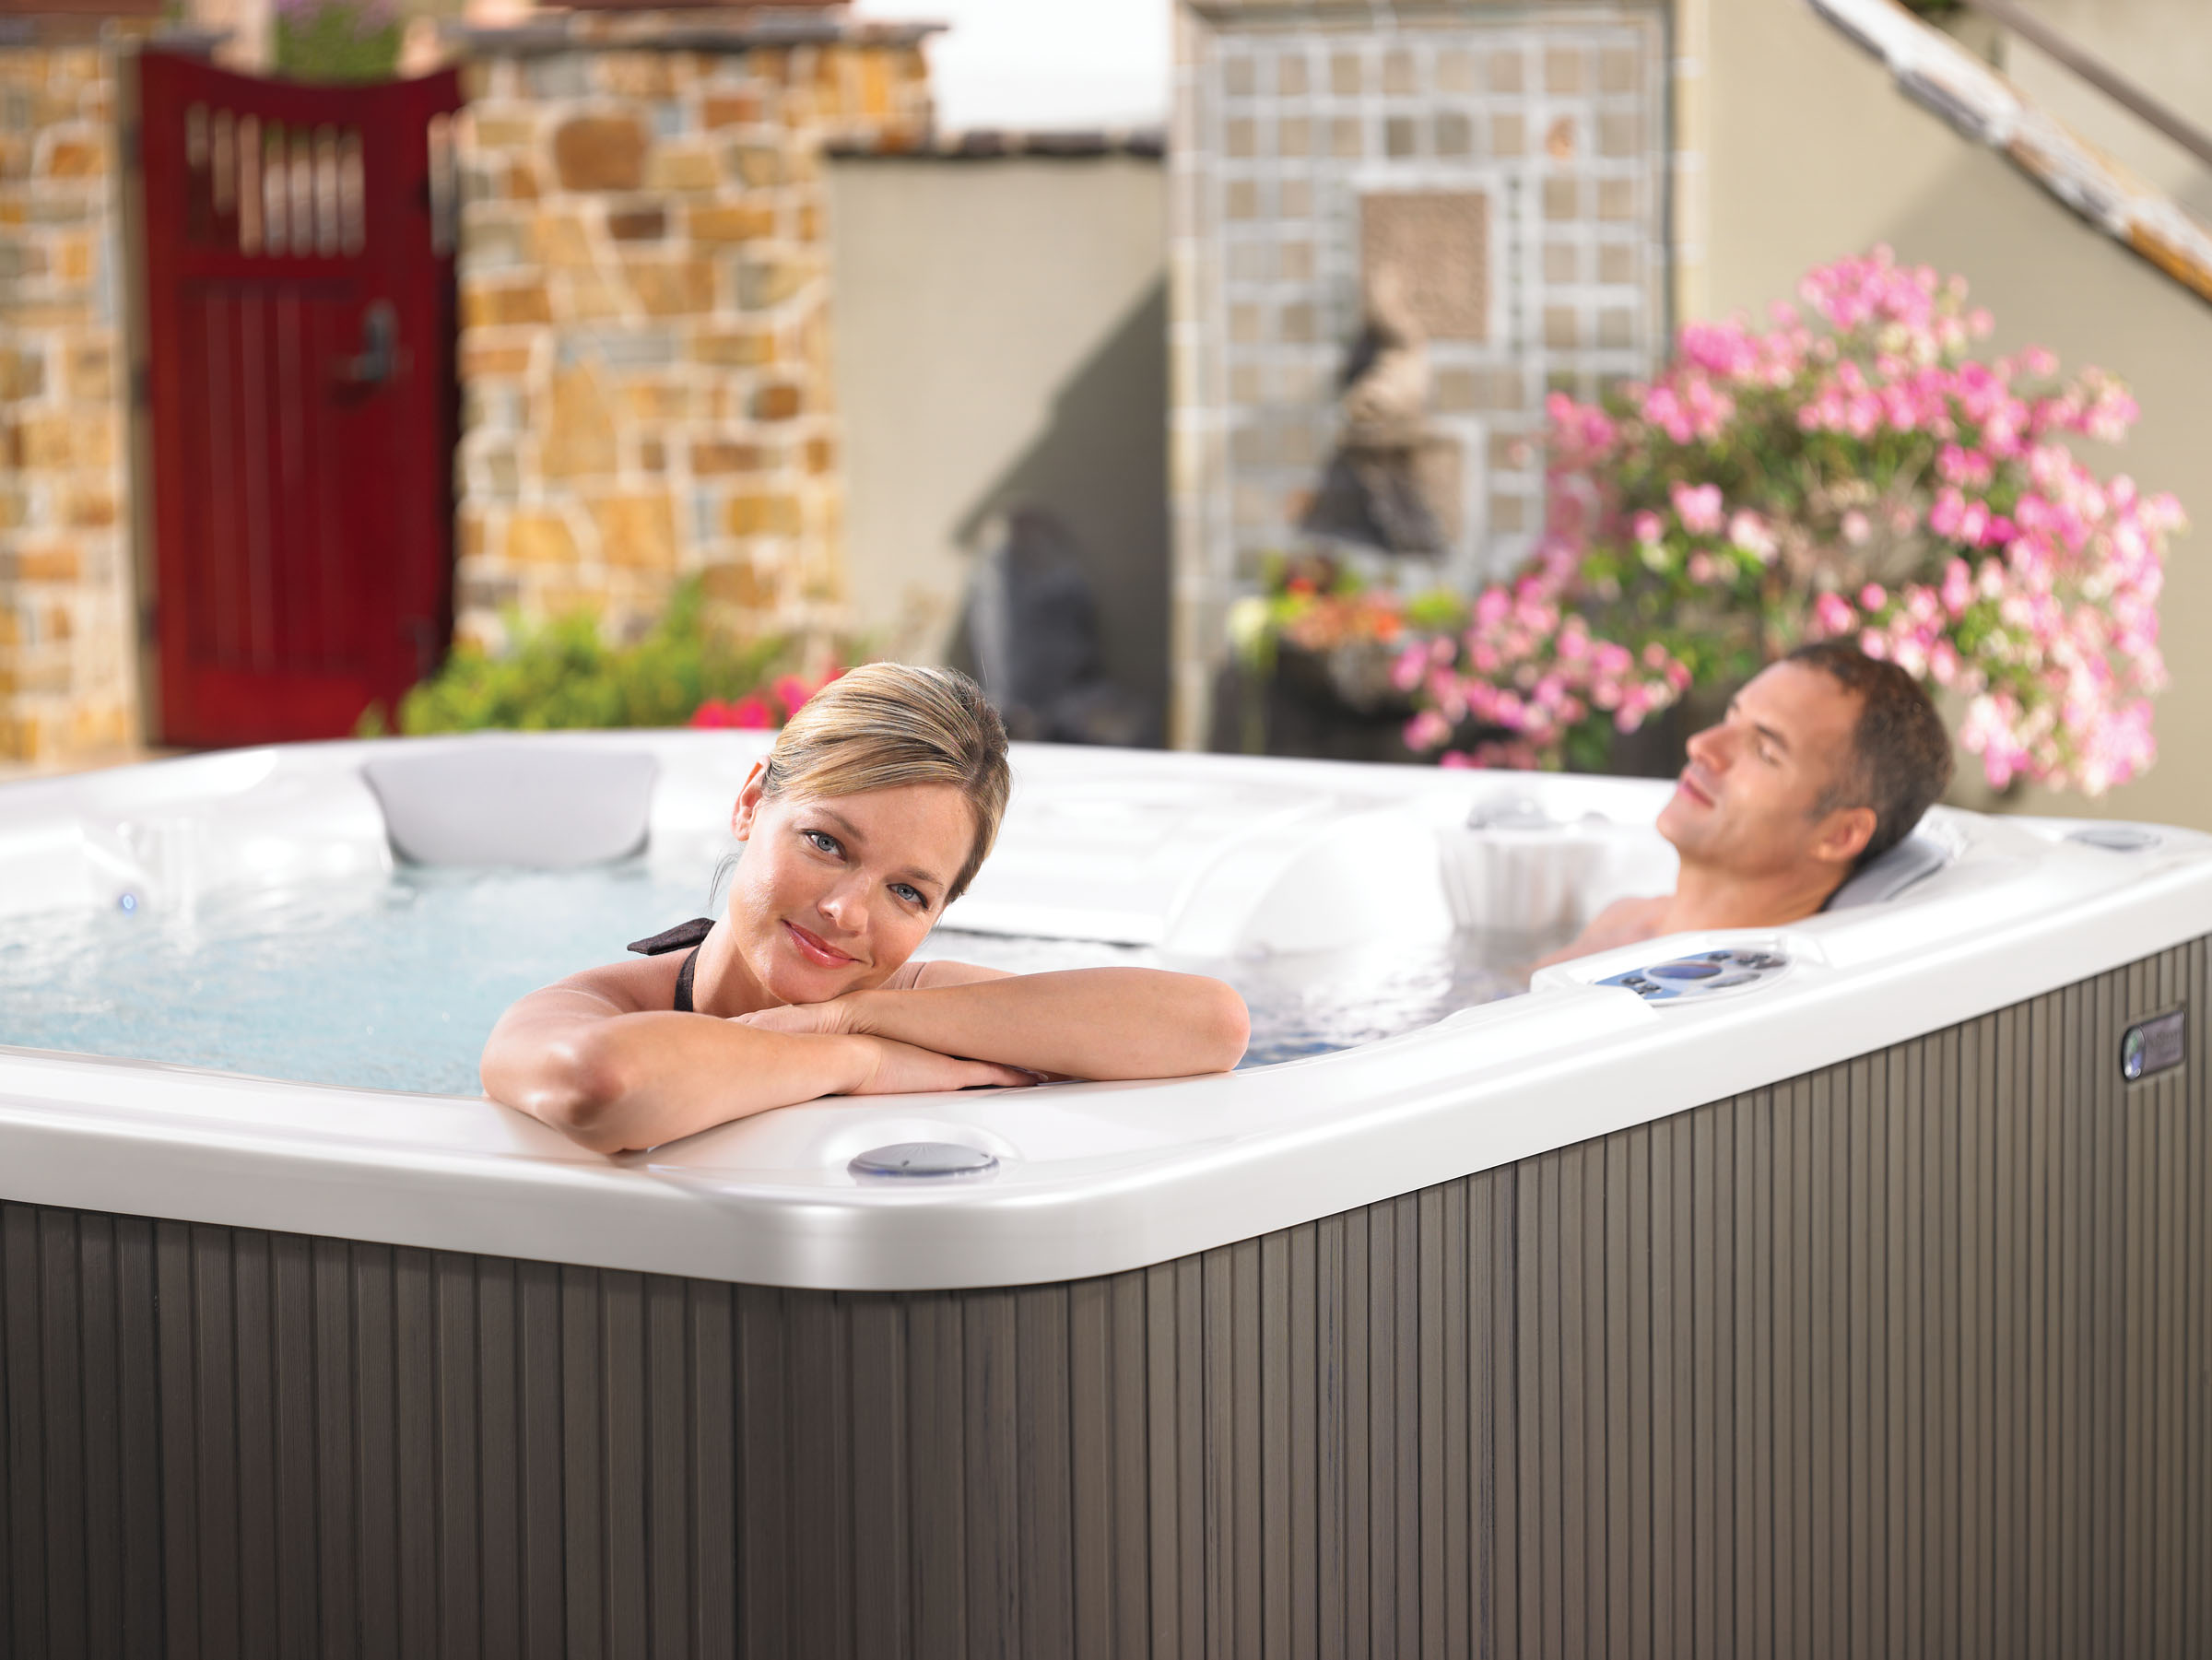 4 Hot Tub Ownership Benefits You Never Knew About